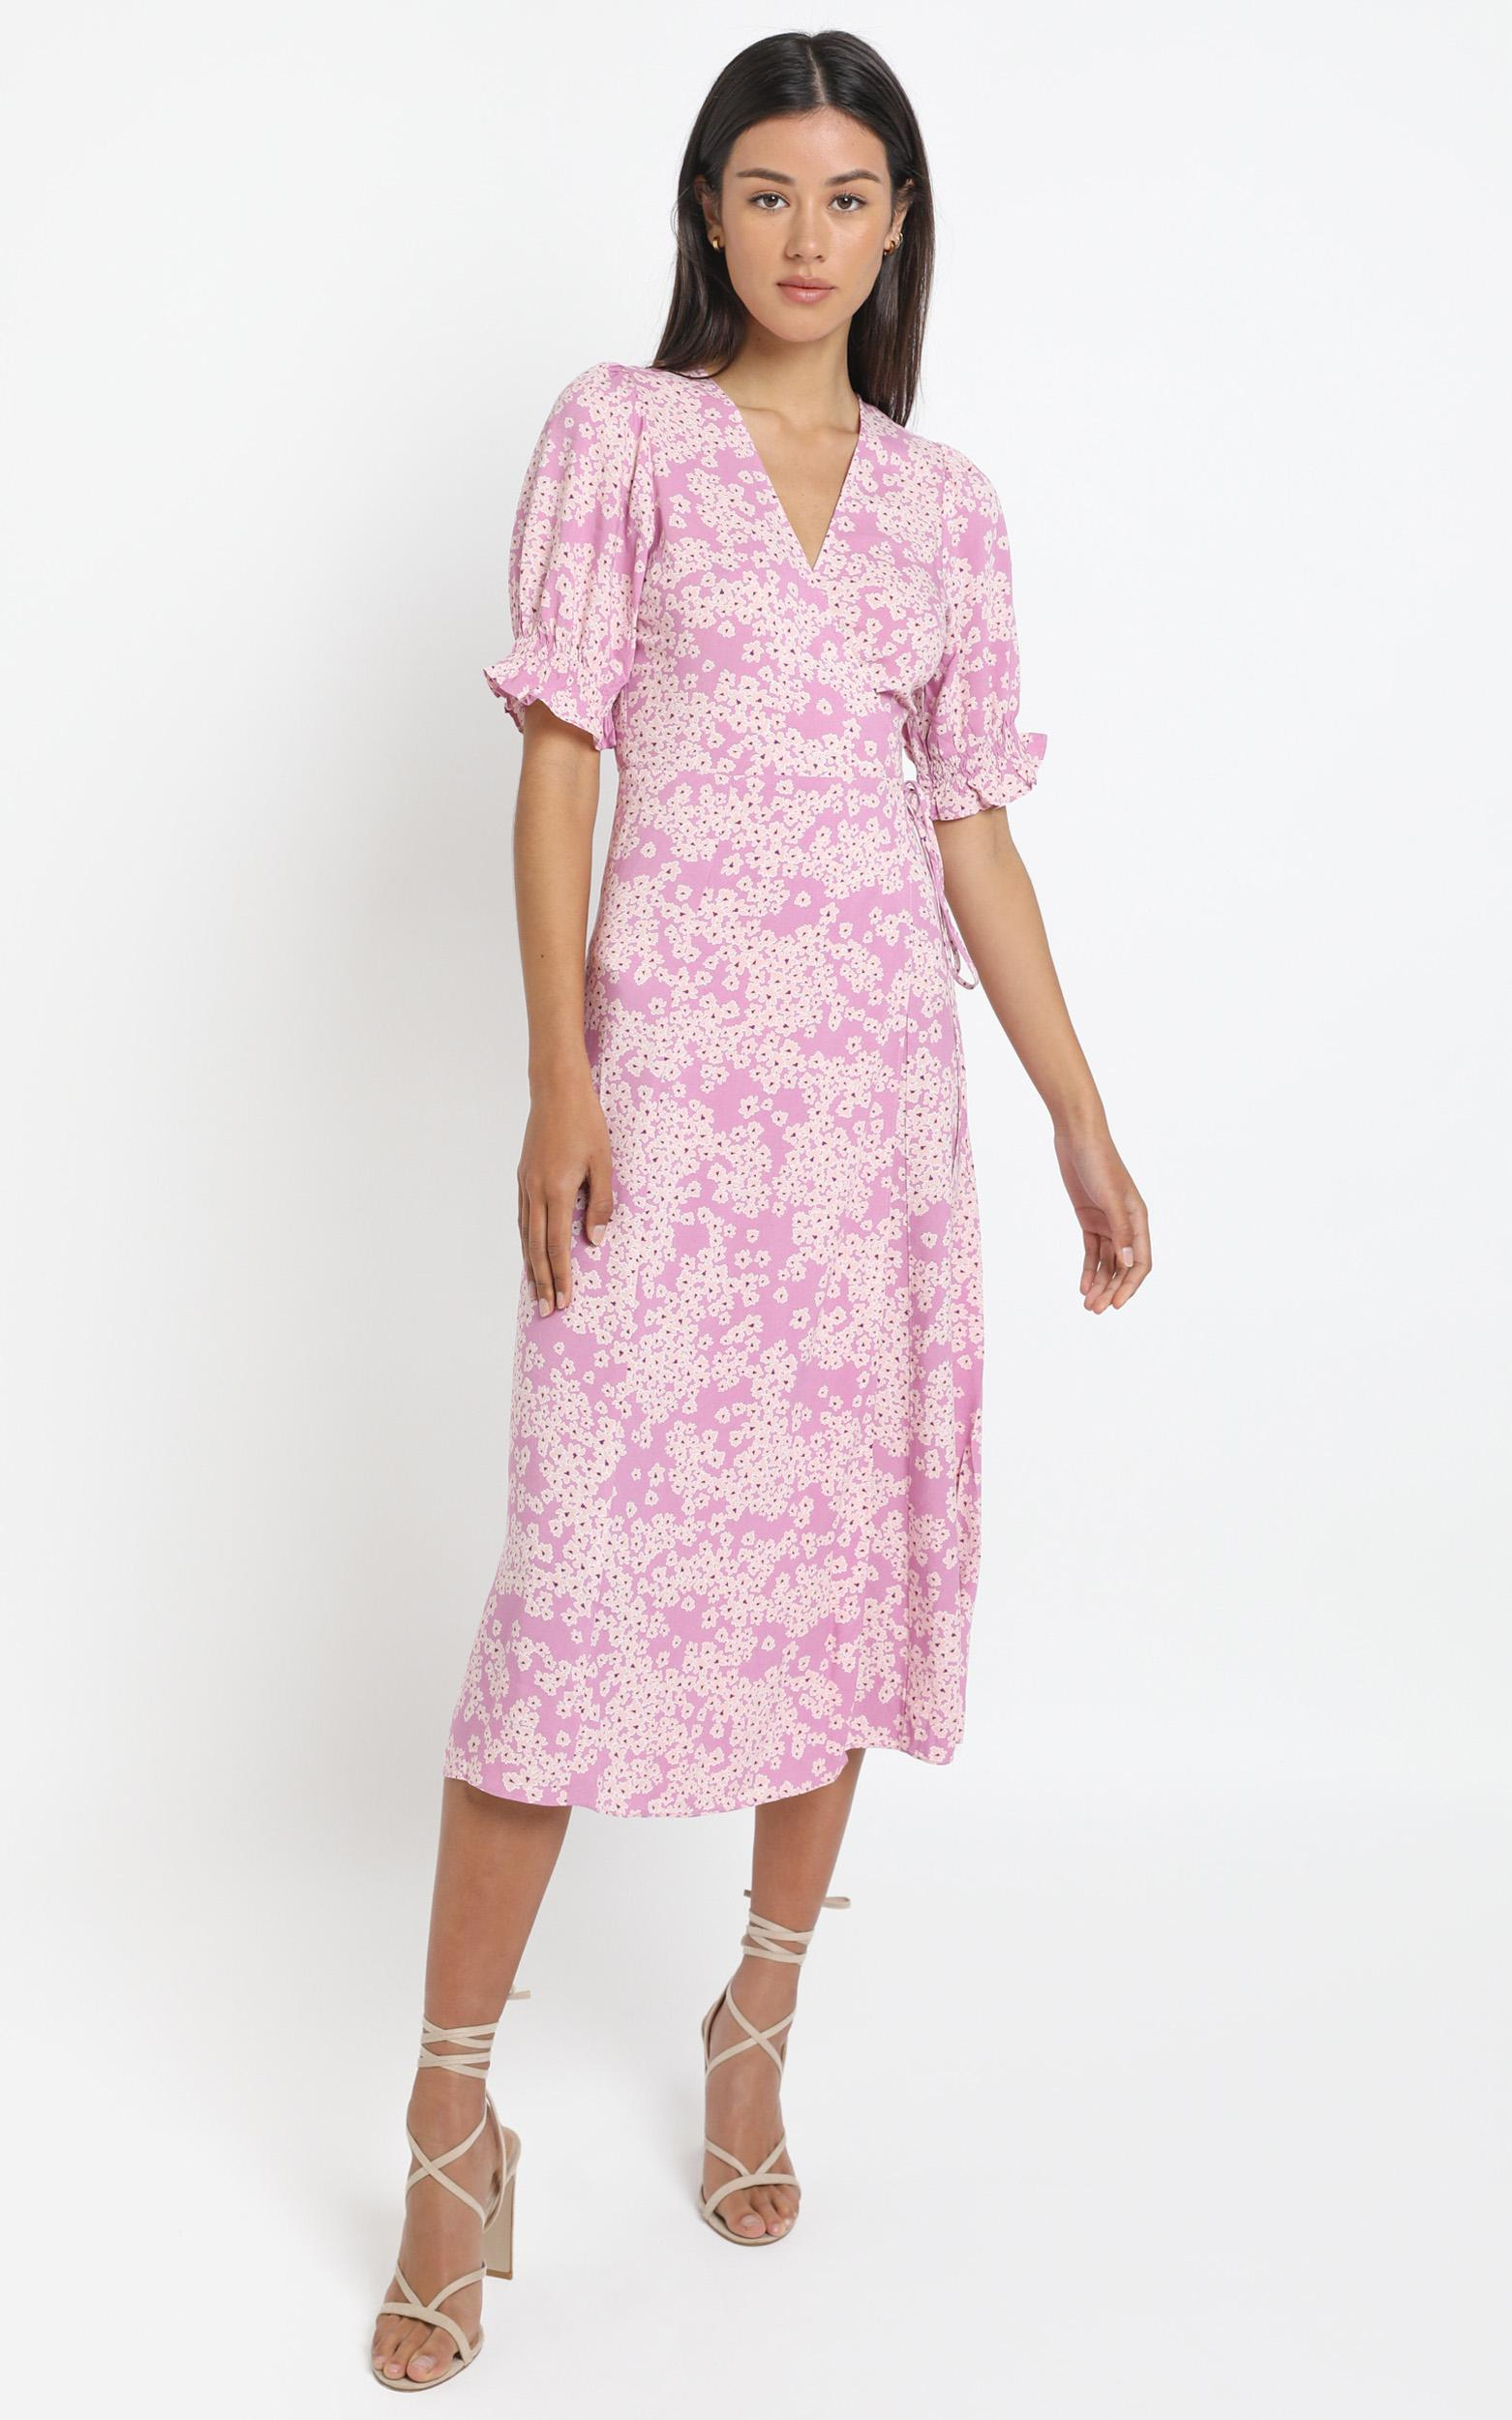 Sierra Vista Dress in orchid - 8 (S), Purple, hi-res image number null